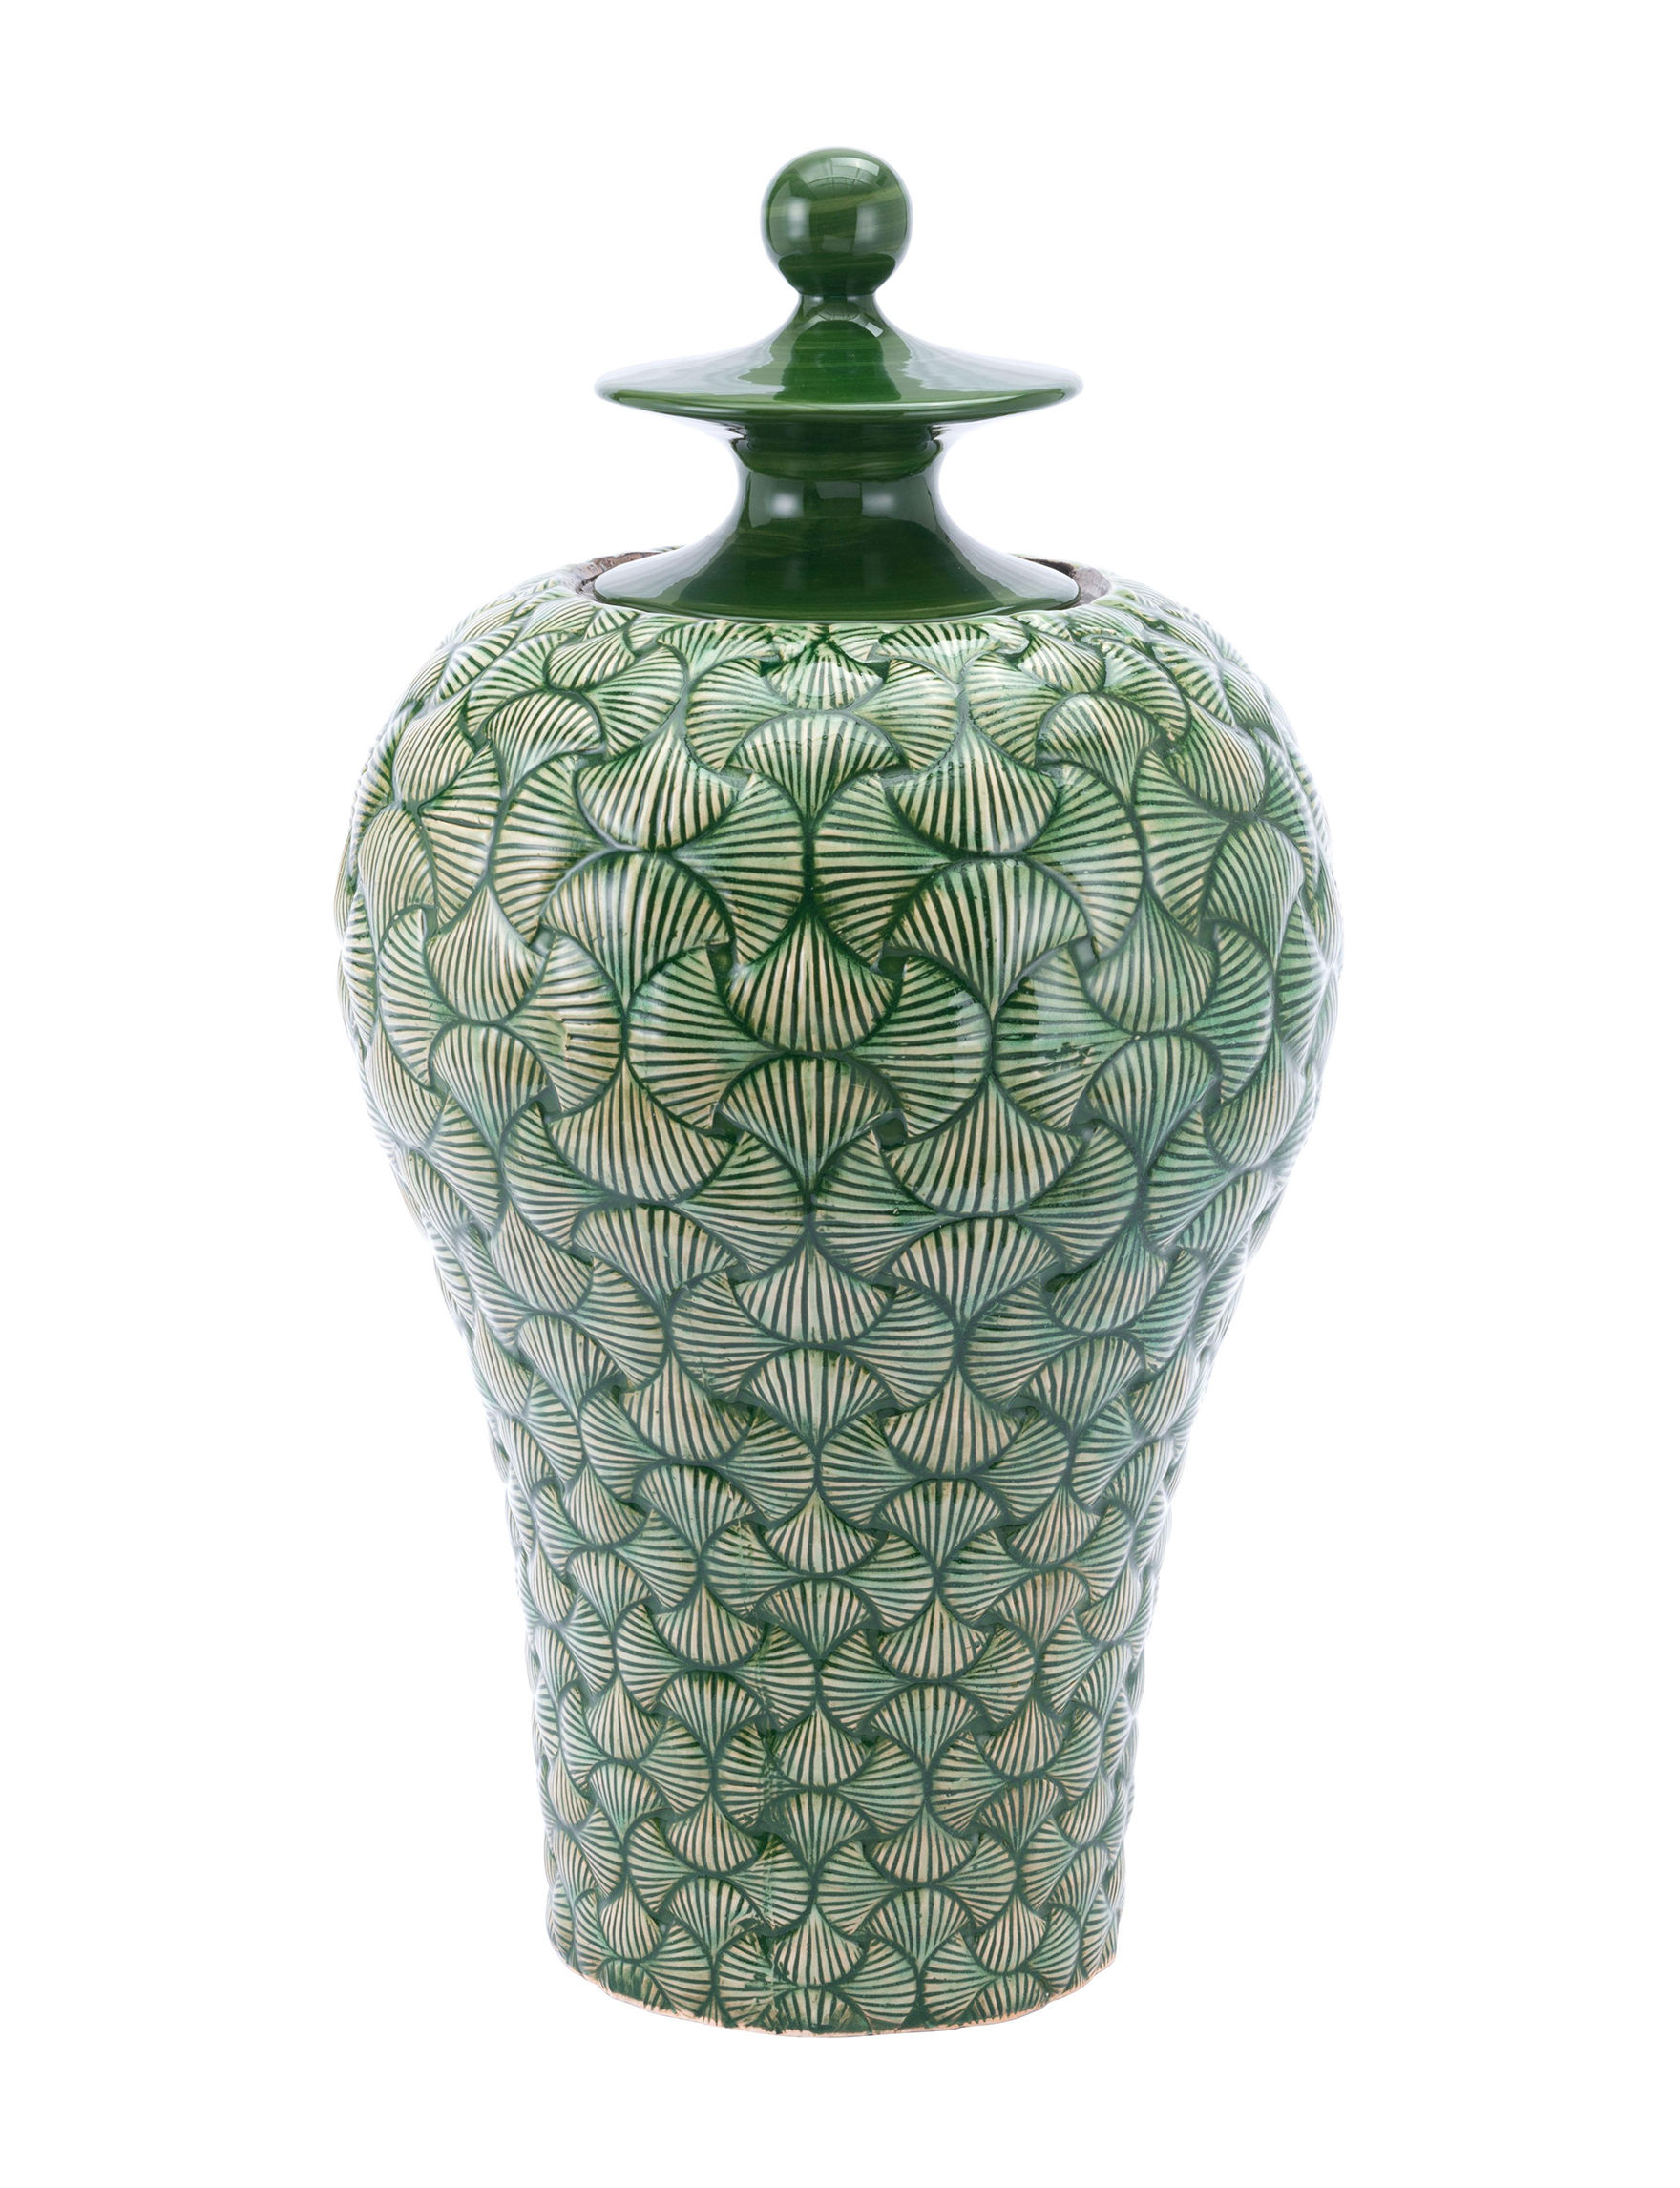 Zuo Modern Green Decorative Objects Home Accents